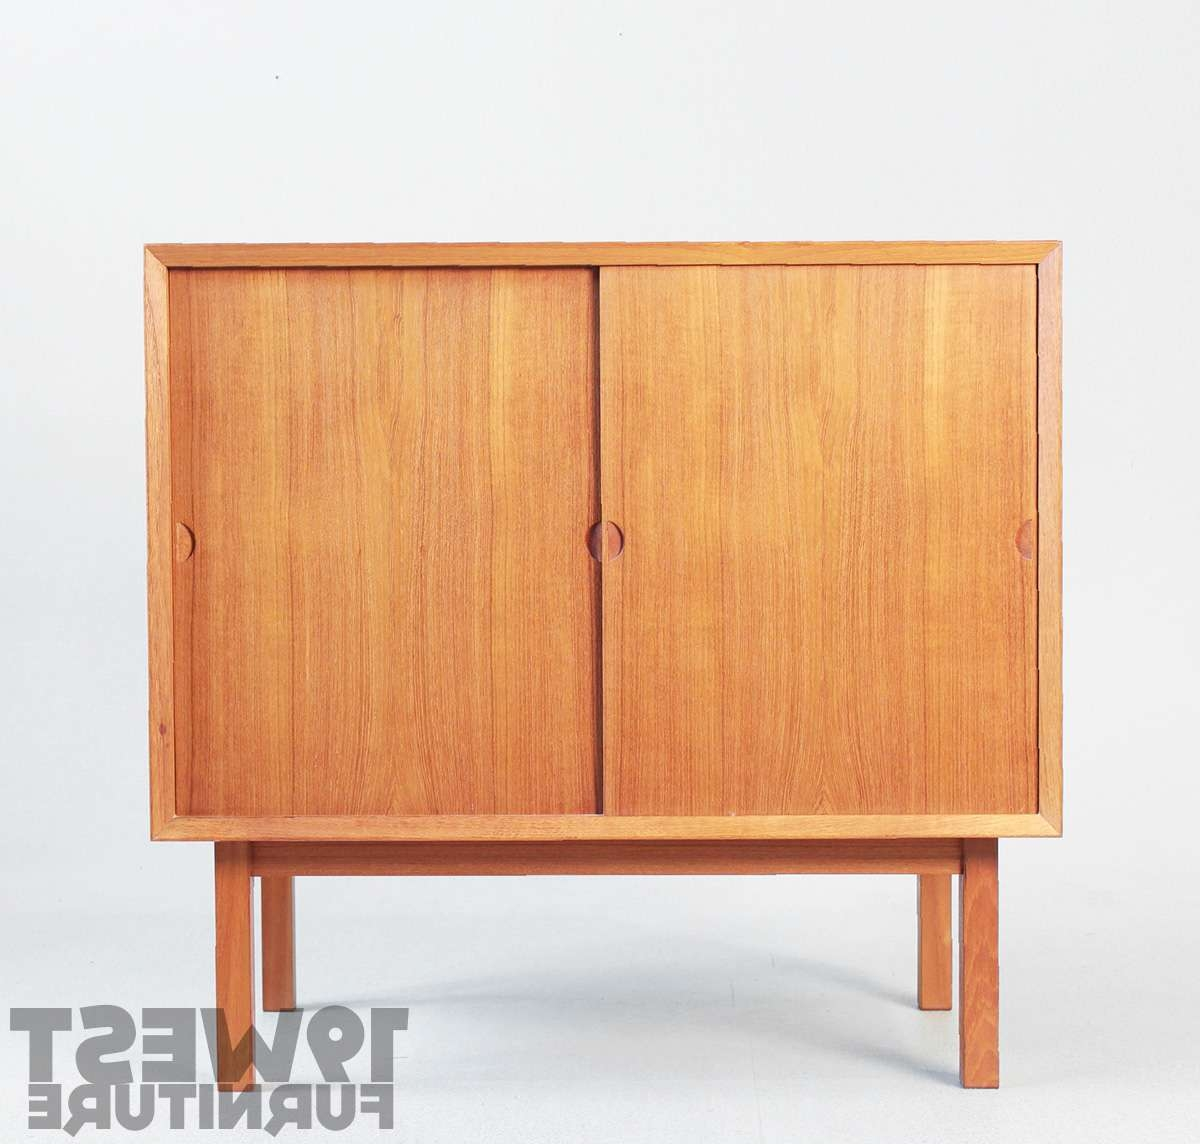 Kleine Sideboards, Poul Cadovius | 19 West Regarding Kleine Sideboards (View 9 of 20)